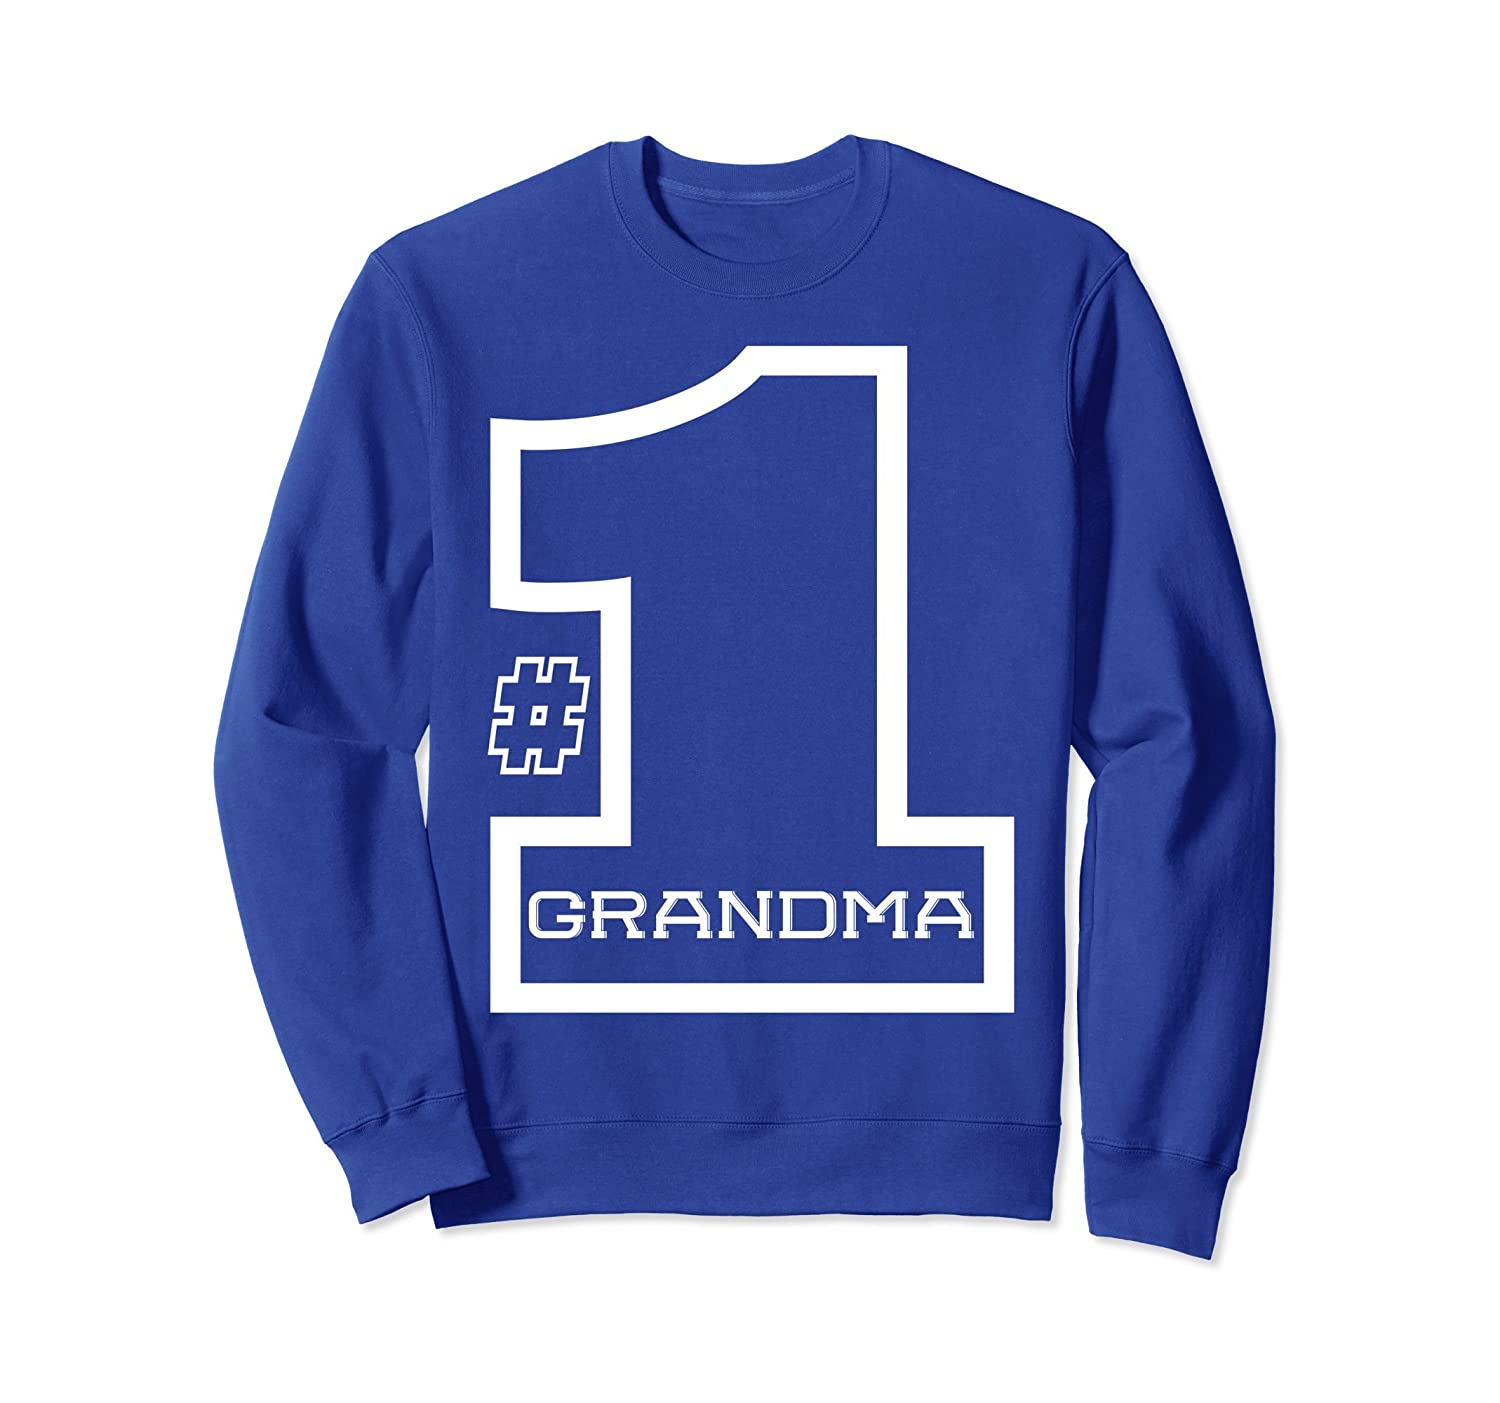 #1 Grandma Number One Sweatshirt Mother's day Gift for Mama- TPT